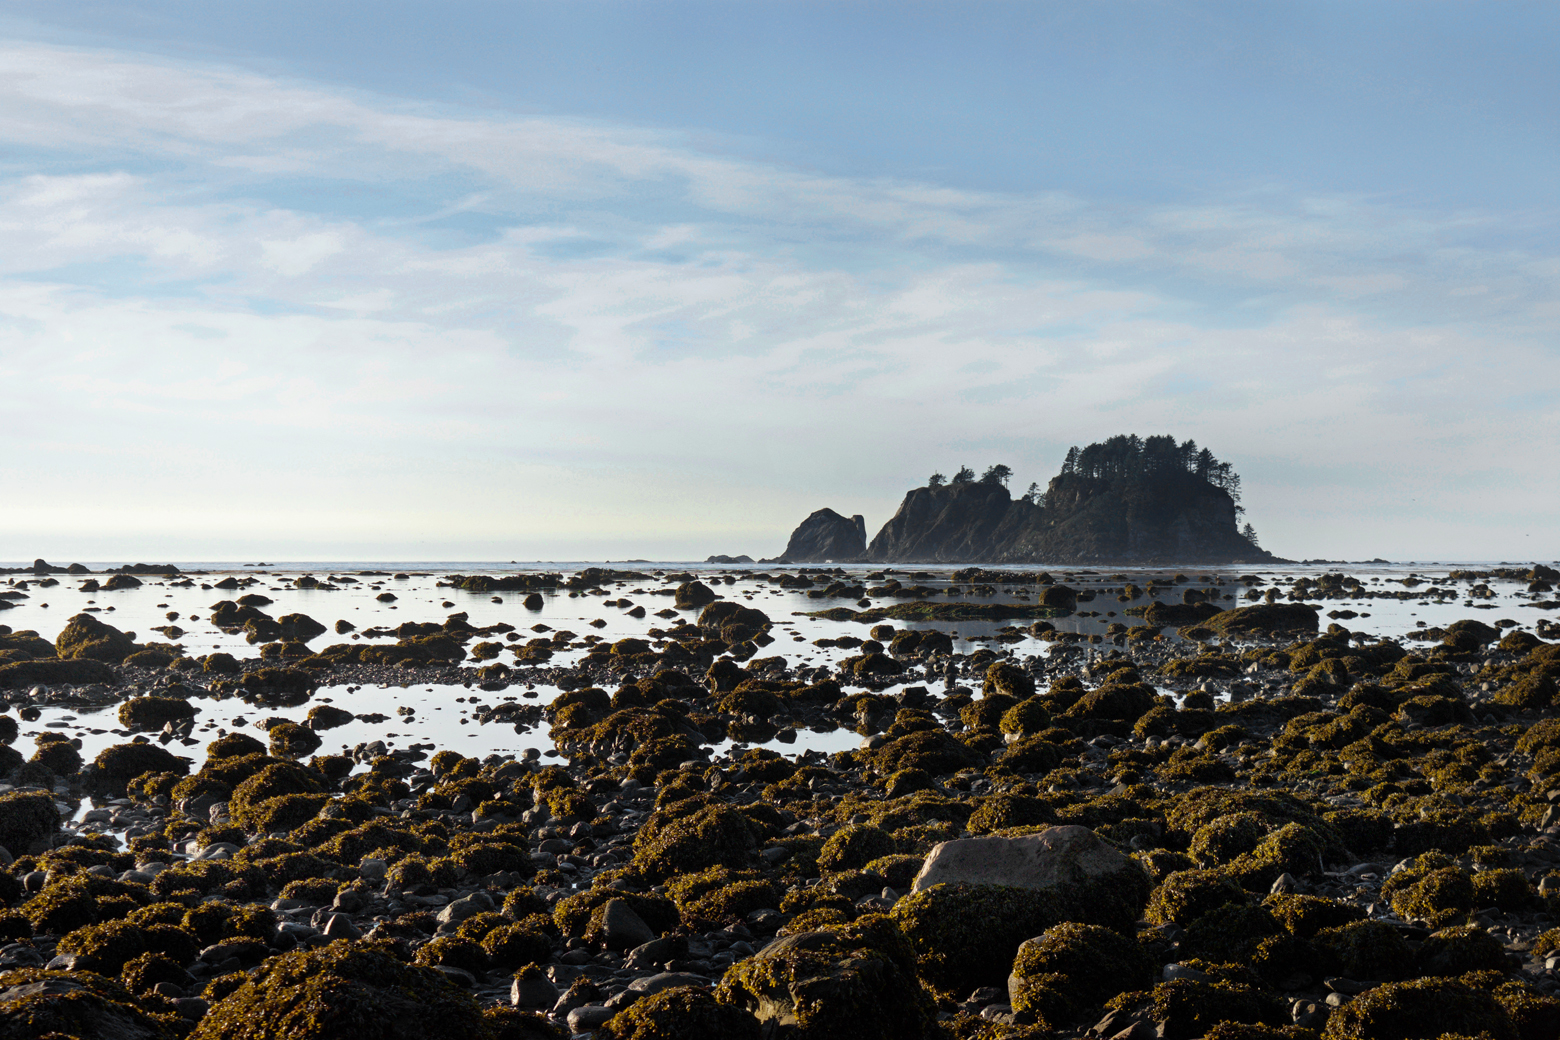 Beach at Cape Alava with rocky tide pools and a sea stack in the distance